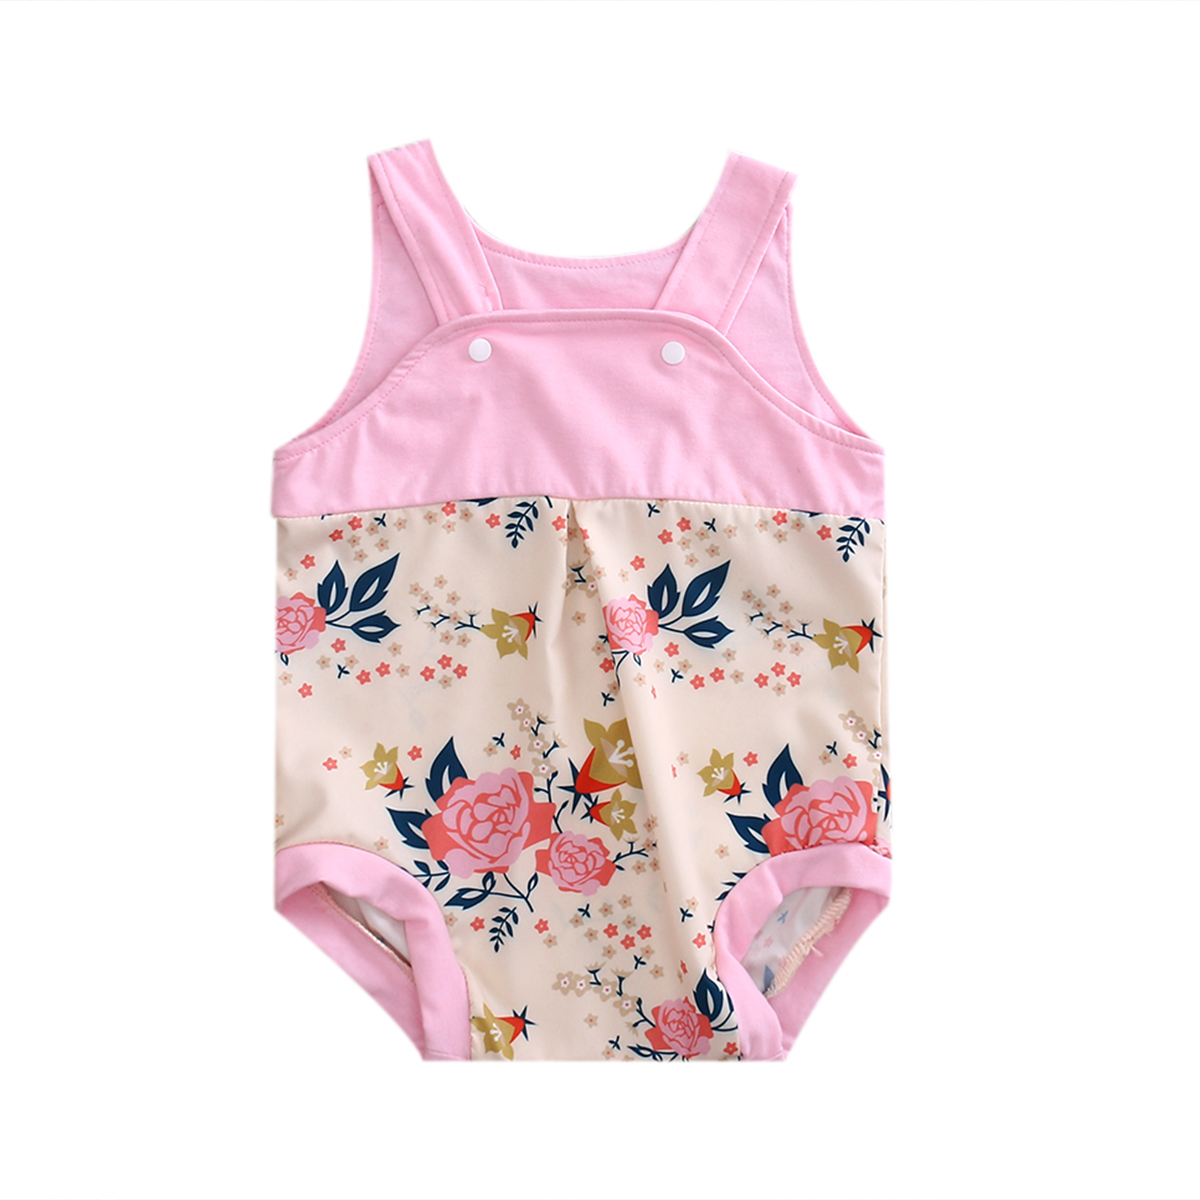 2017 Cute Sweet Newborn Baby Girl Sleeveless Pink Floral Cotton Romper Jumpsuit Toddler Summer Clothes Set Outfit